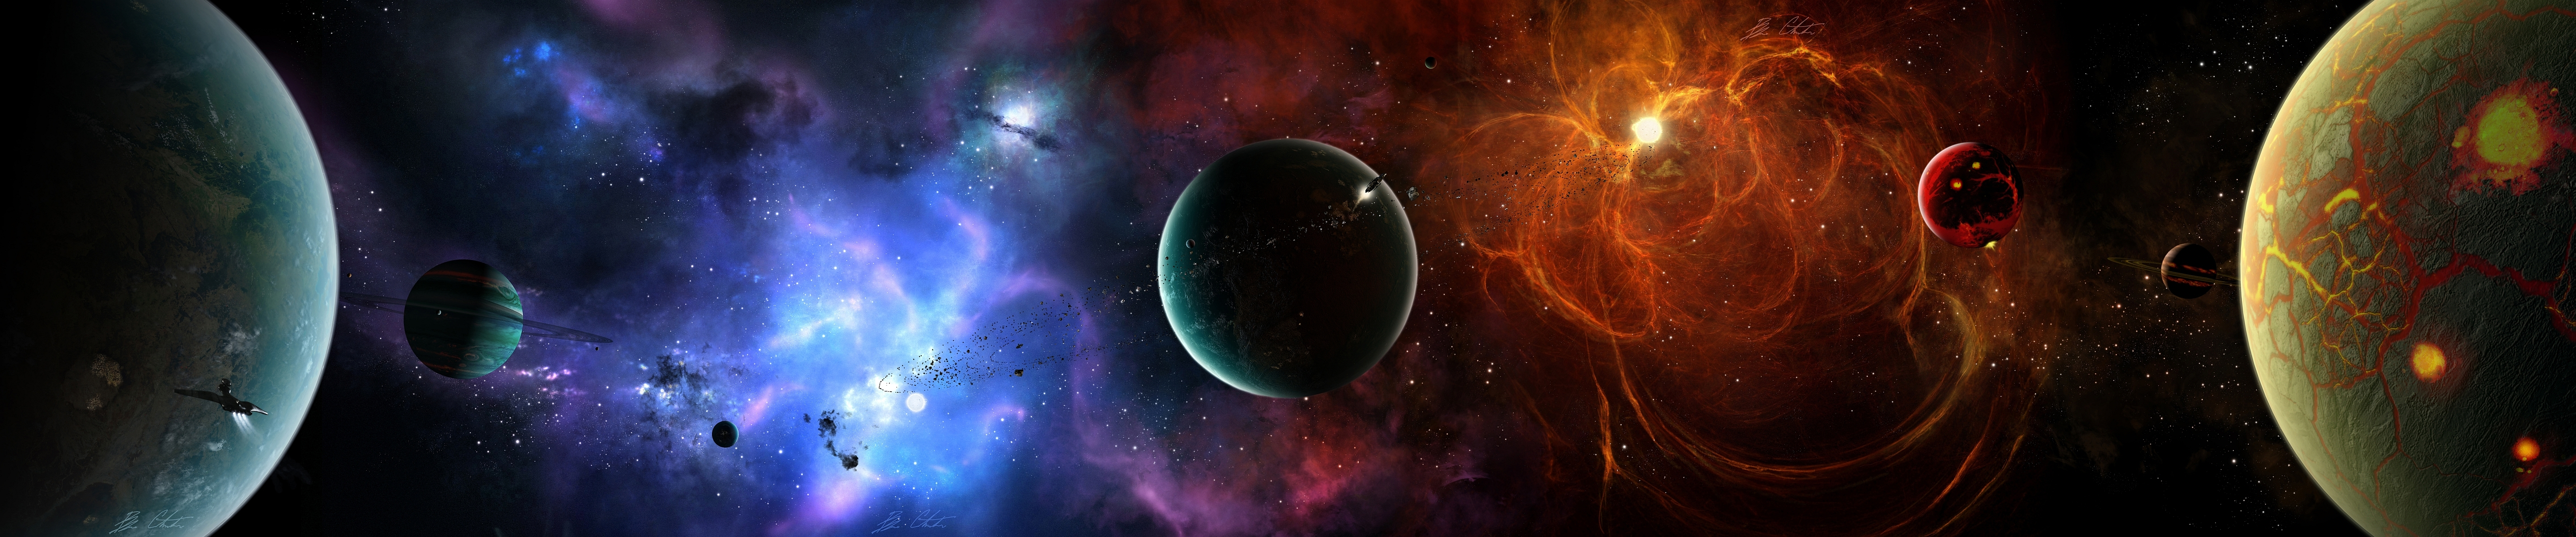 dual screen wallpapers space